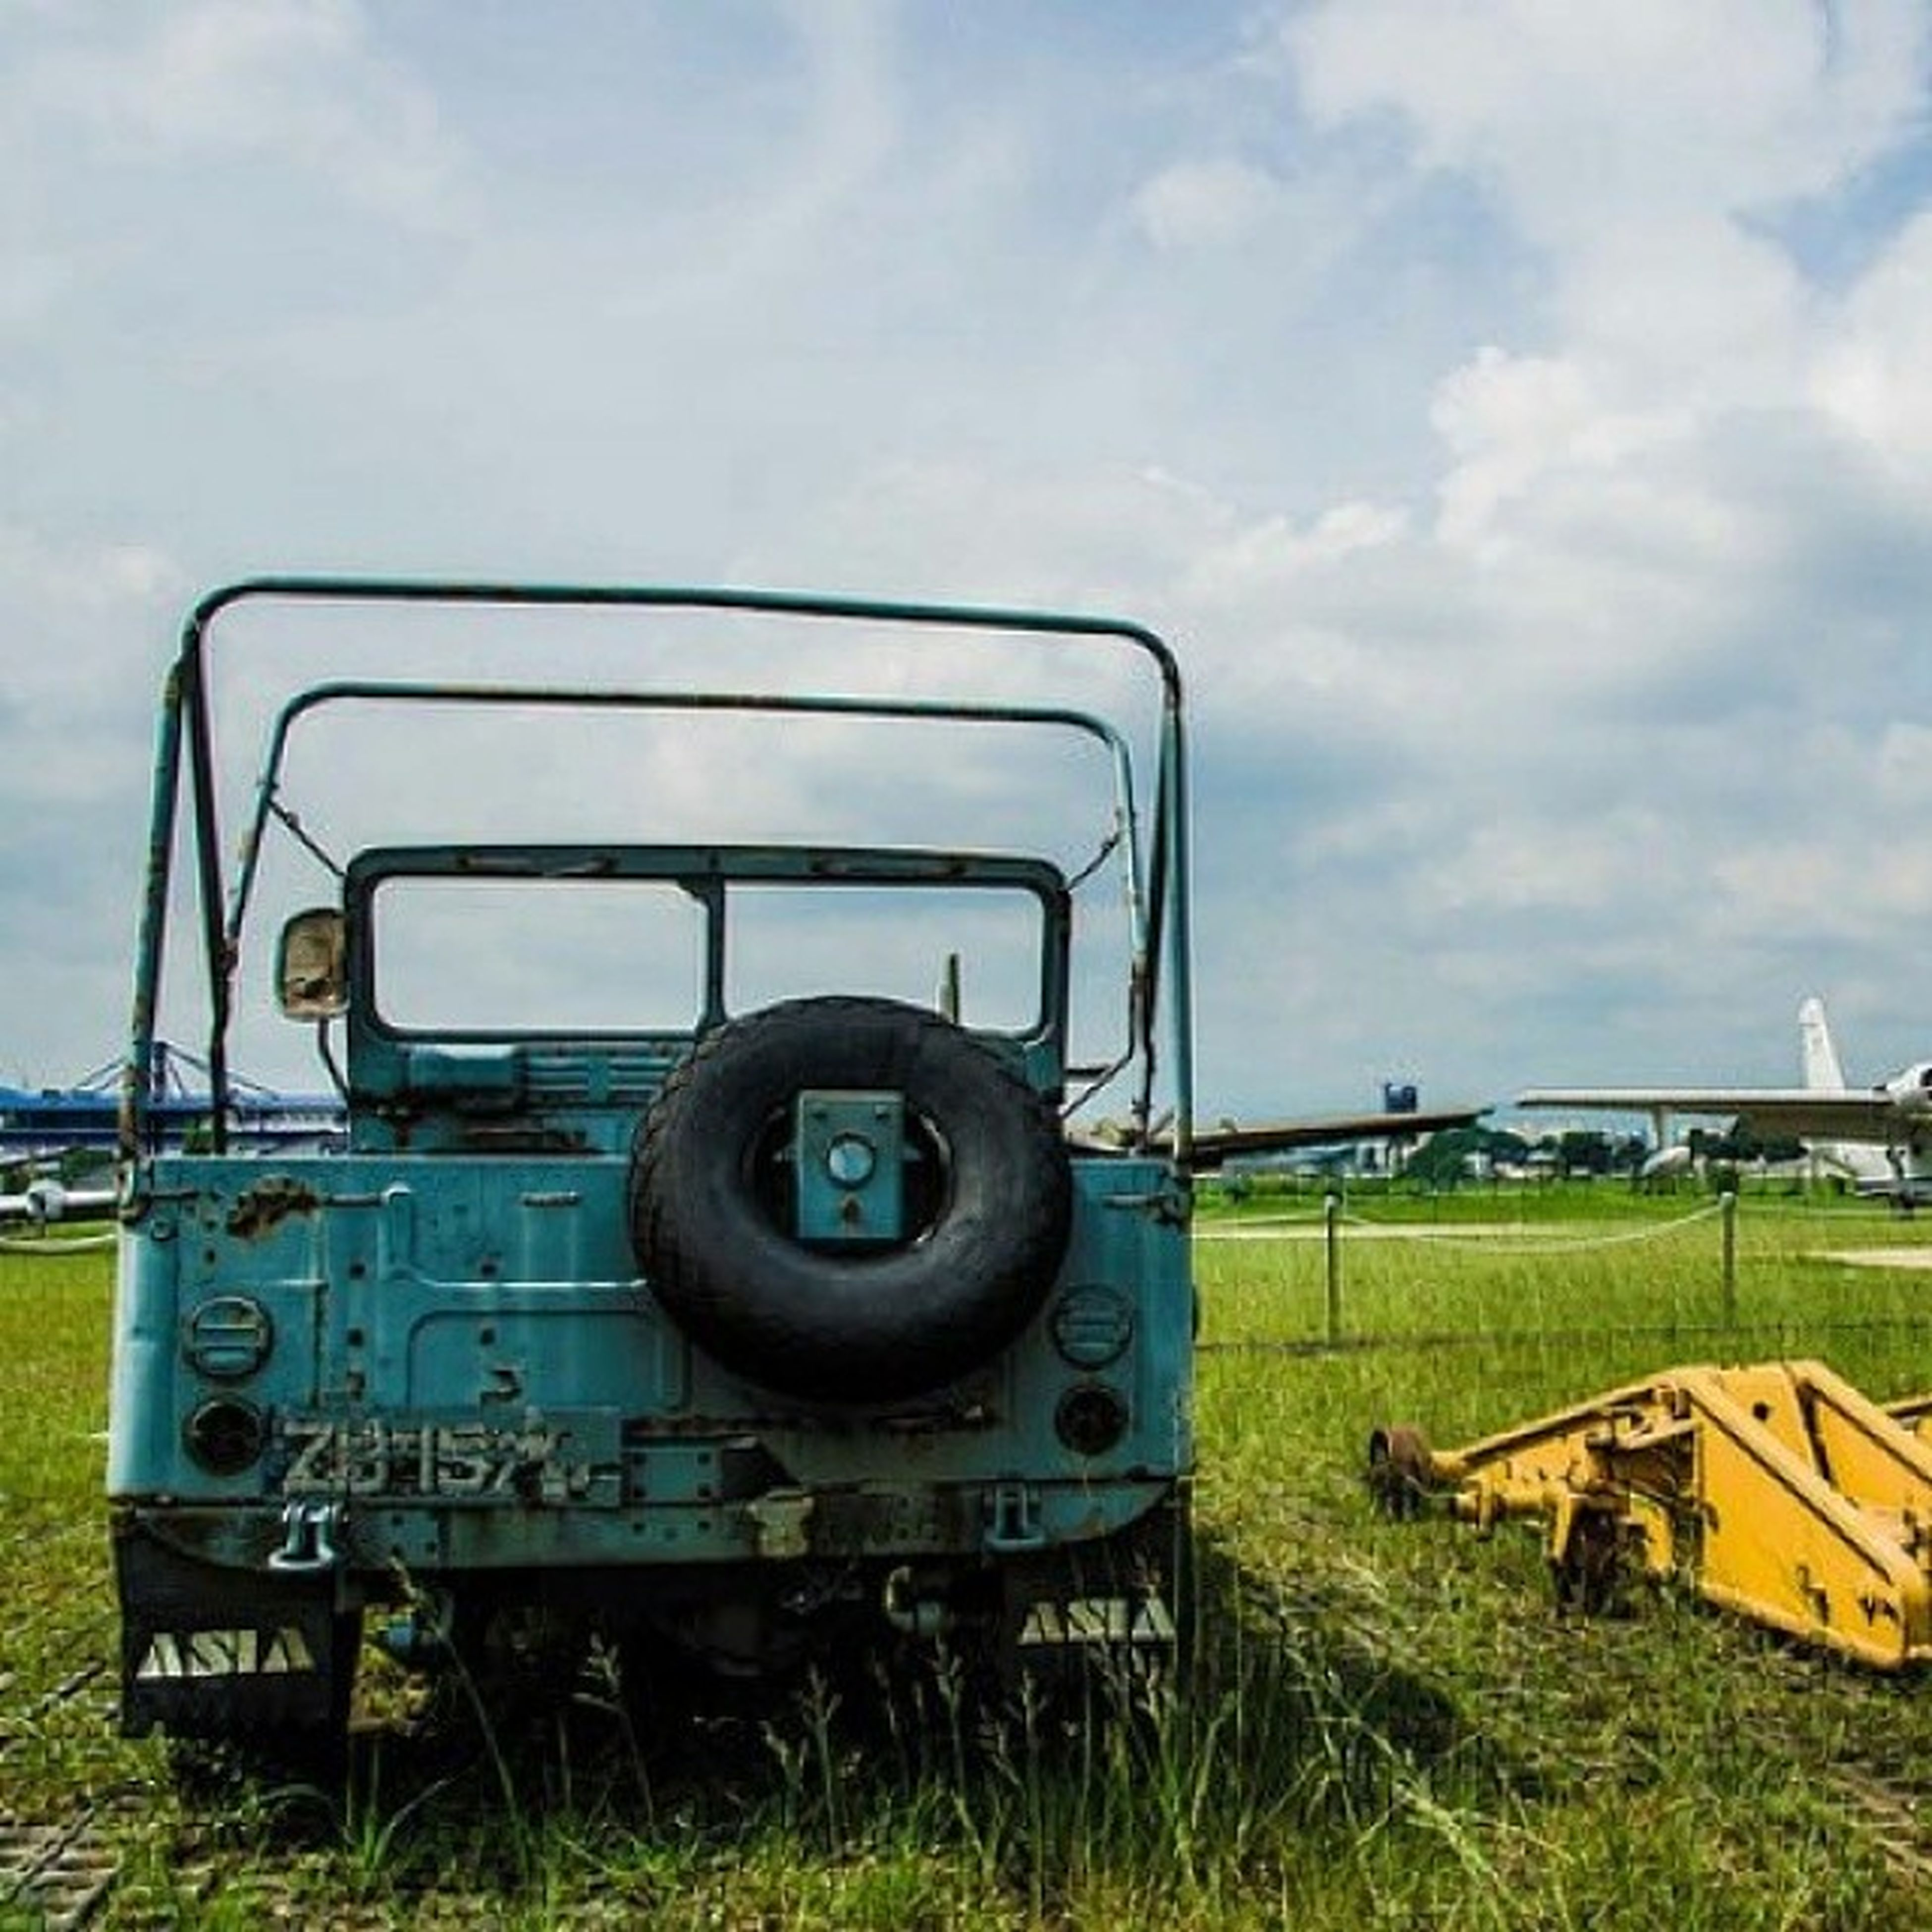 grass, field, sky, transportation, mode of transport, cloud - sky, land vehicle, green color, grassy, landscape, day, abandoned, metal, tractor, no people, outdoors, agriculture, cloud, rural scene, nature